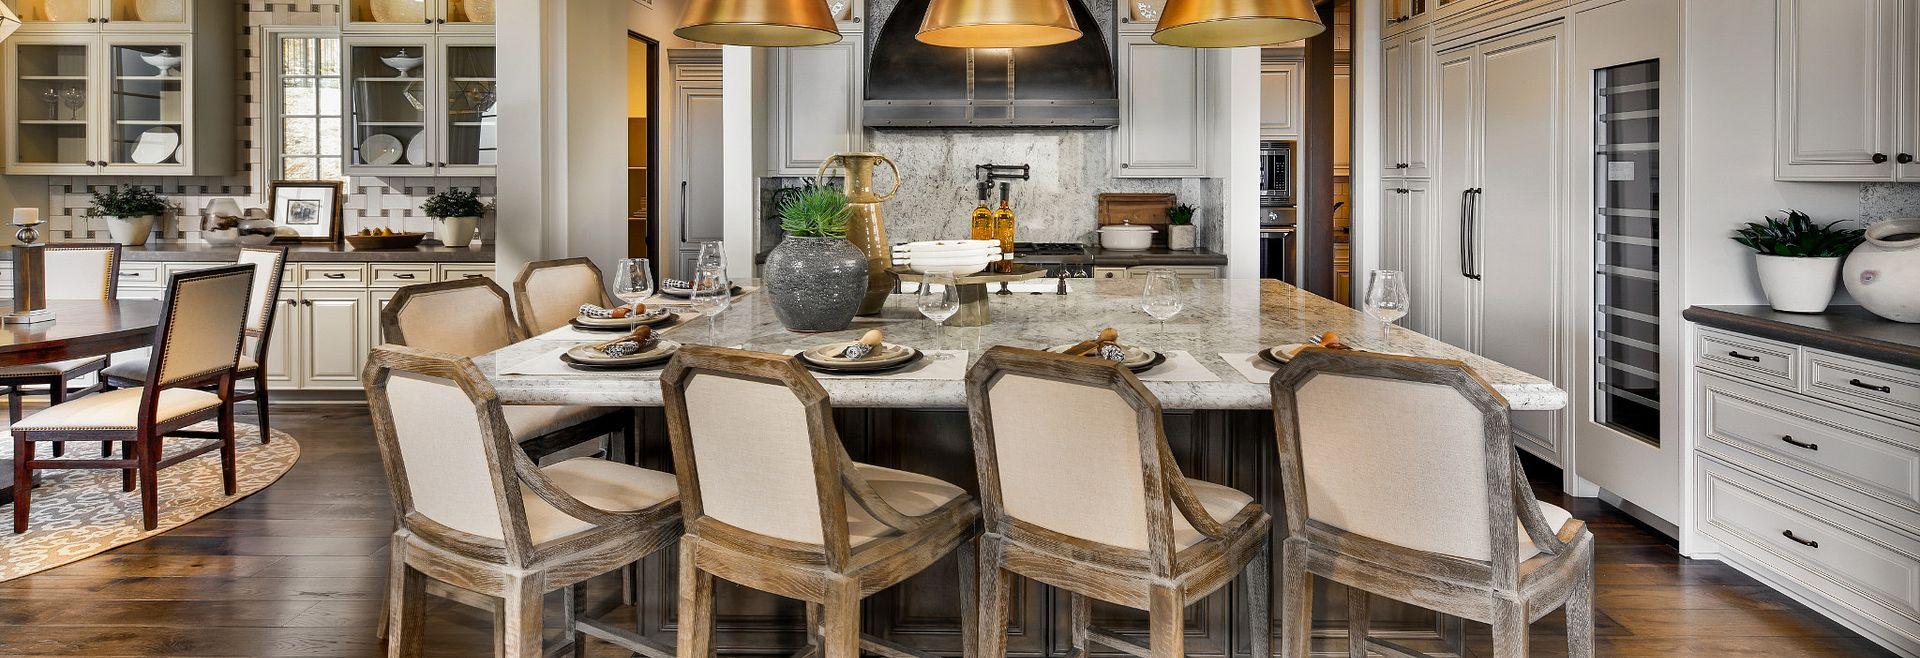 Plan 7 Kitchen with pendant lighting, barstool chairs, and large island